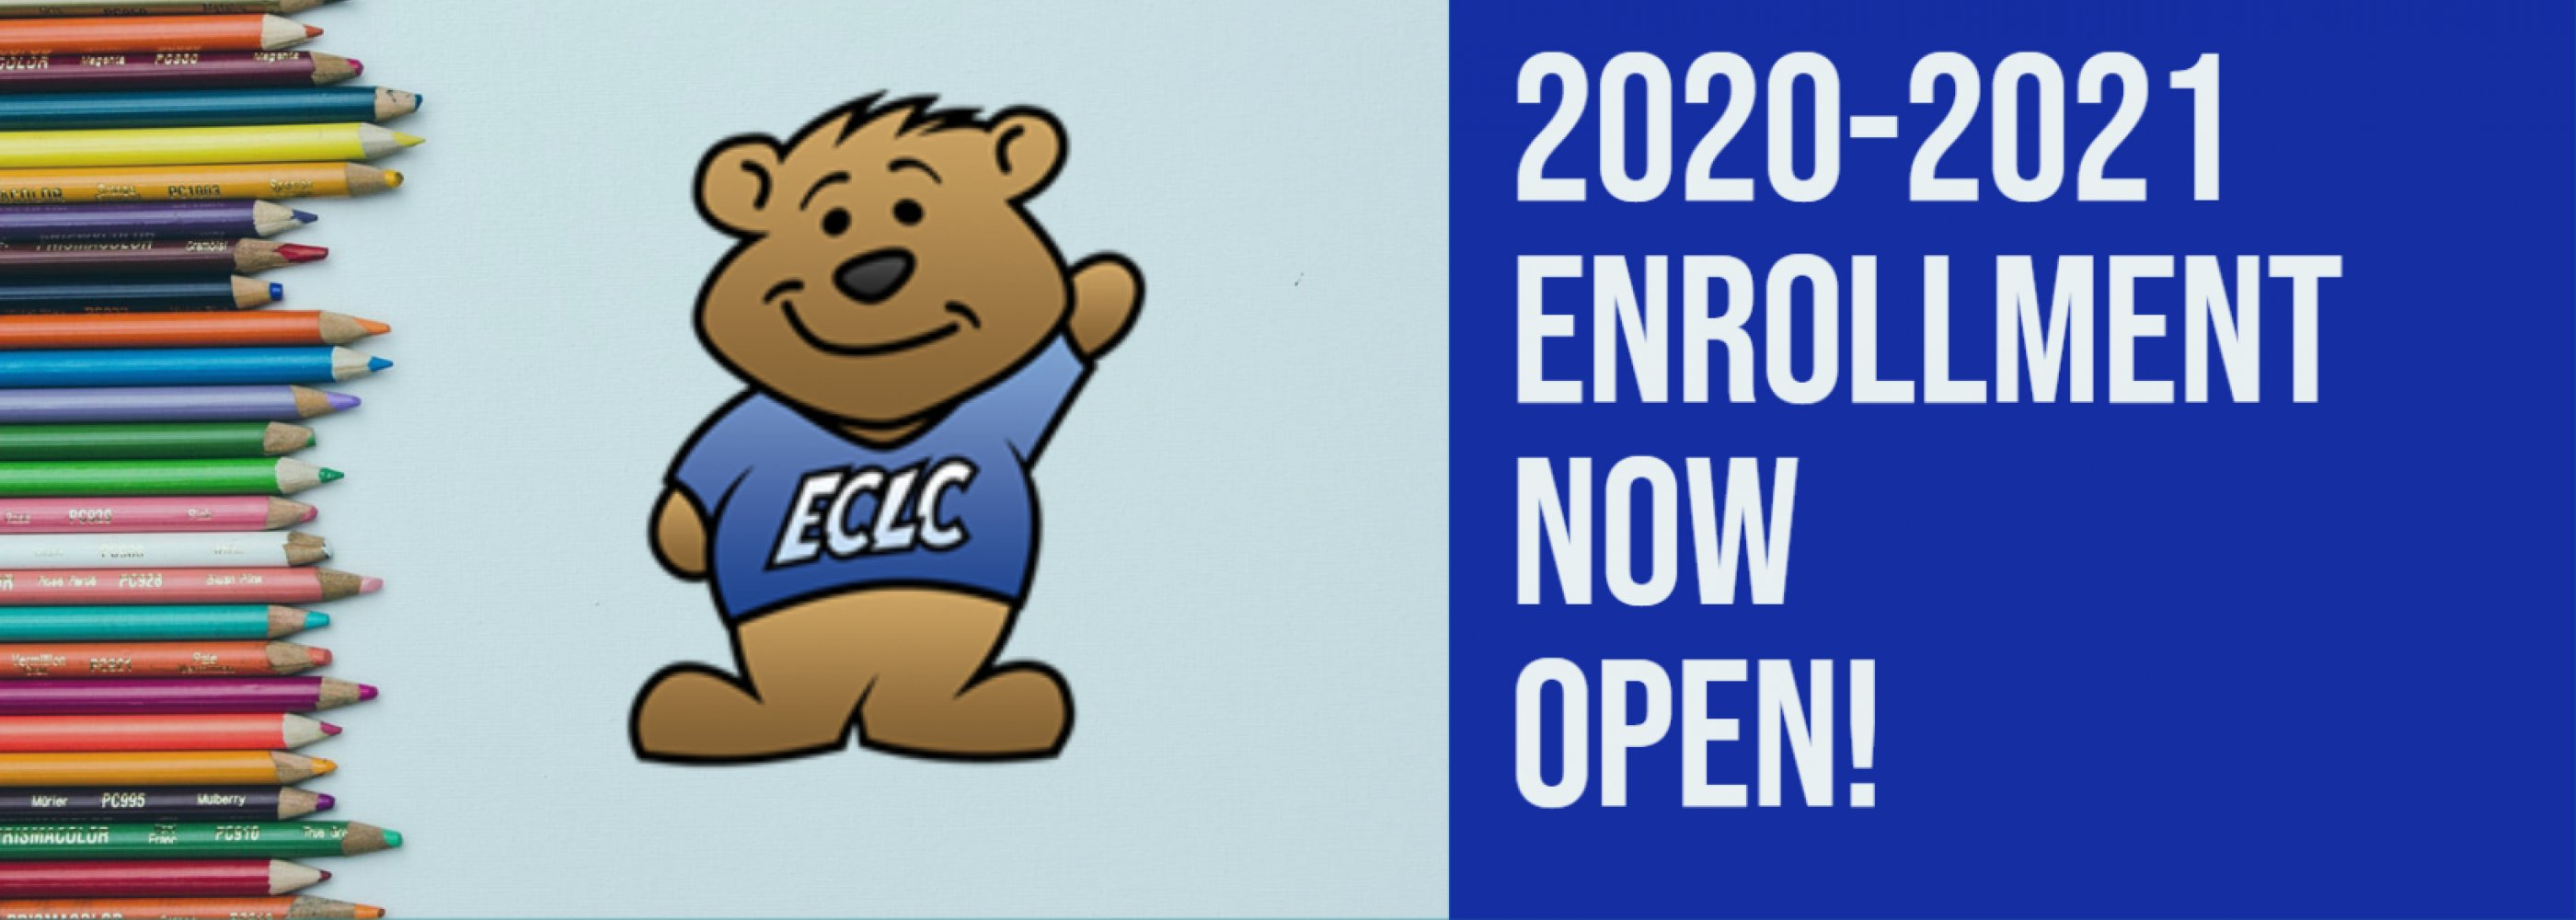 2020-2021 Enrollment Now Open